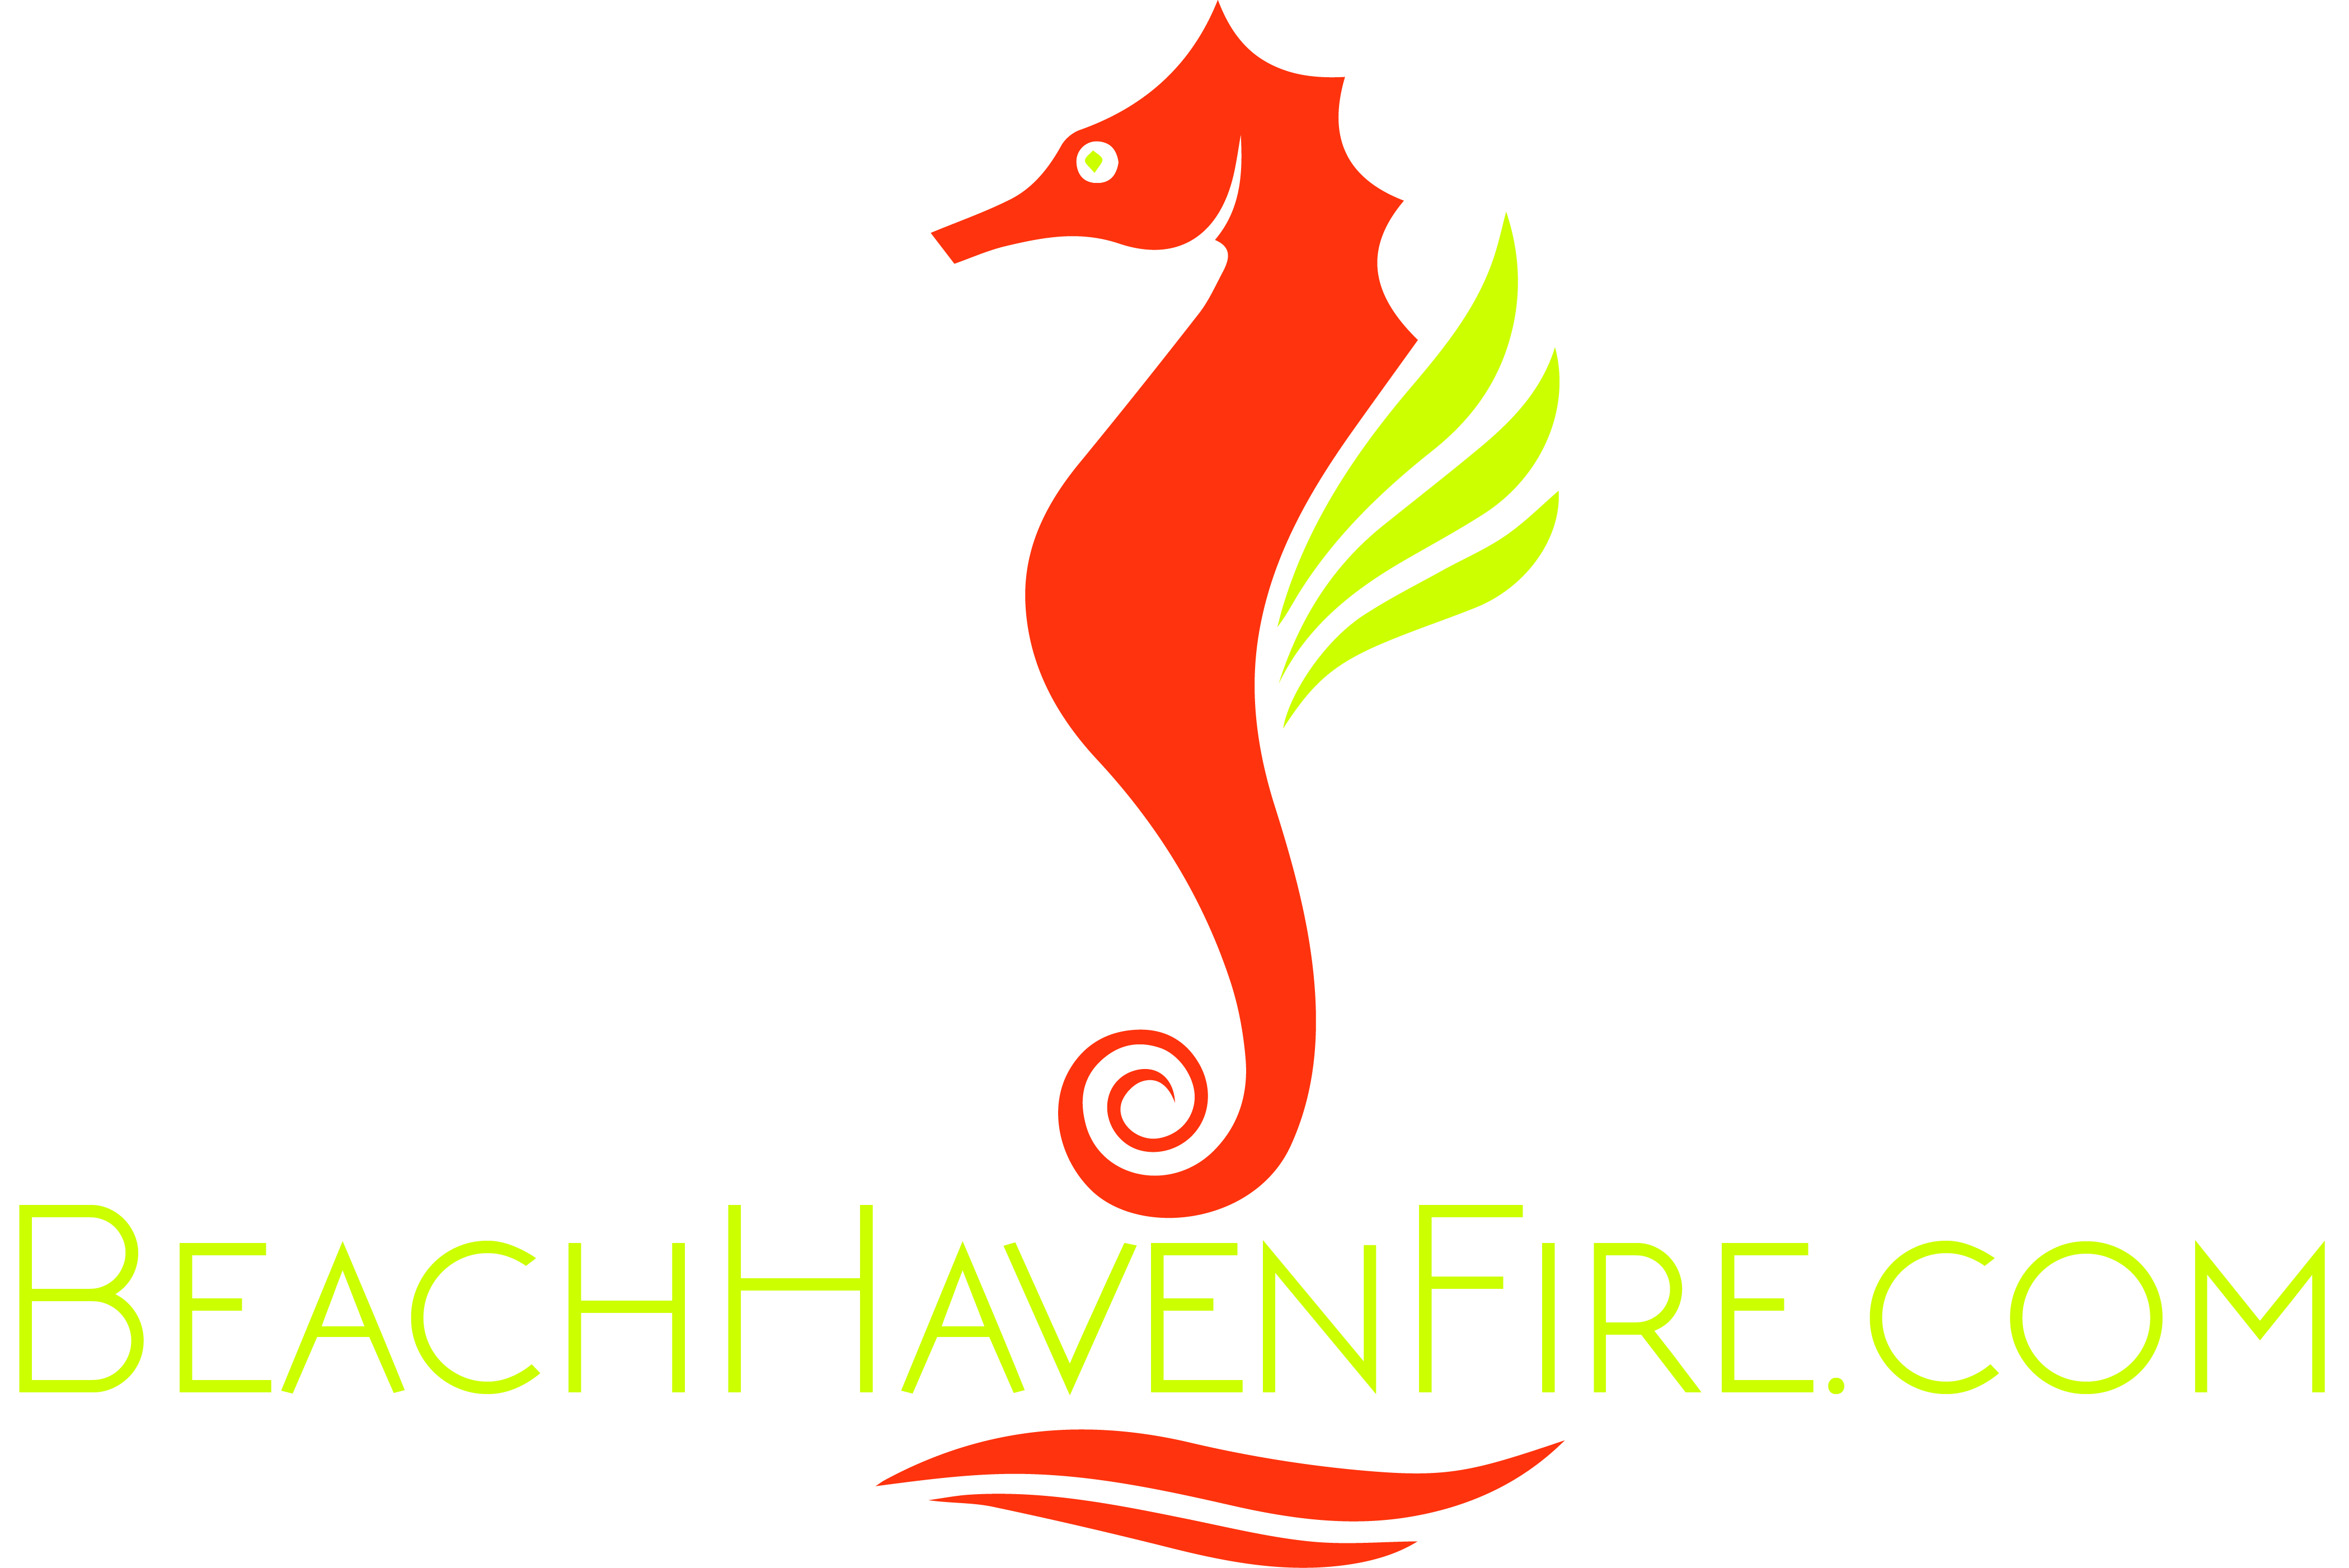 BeachHavenFire.com Store